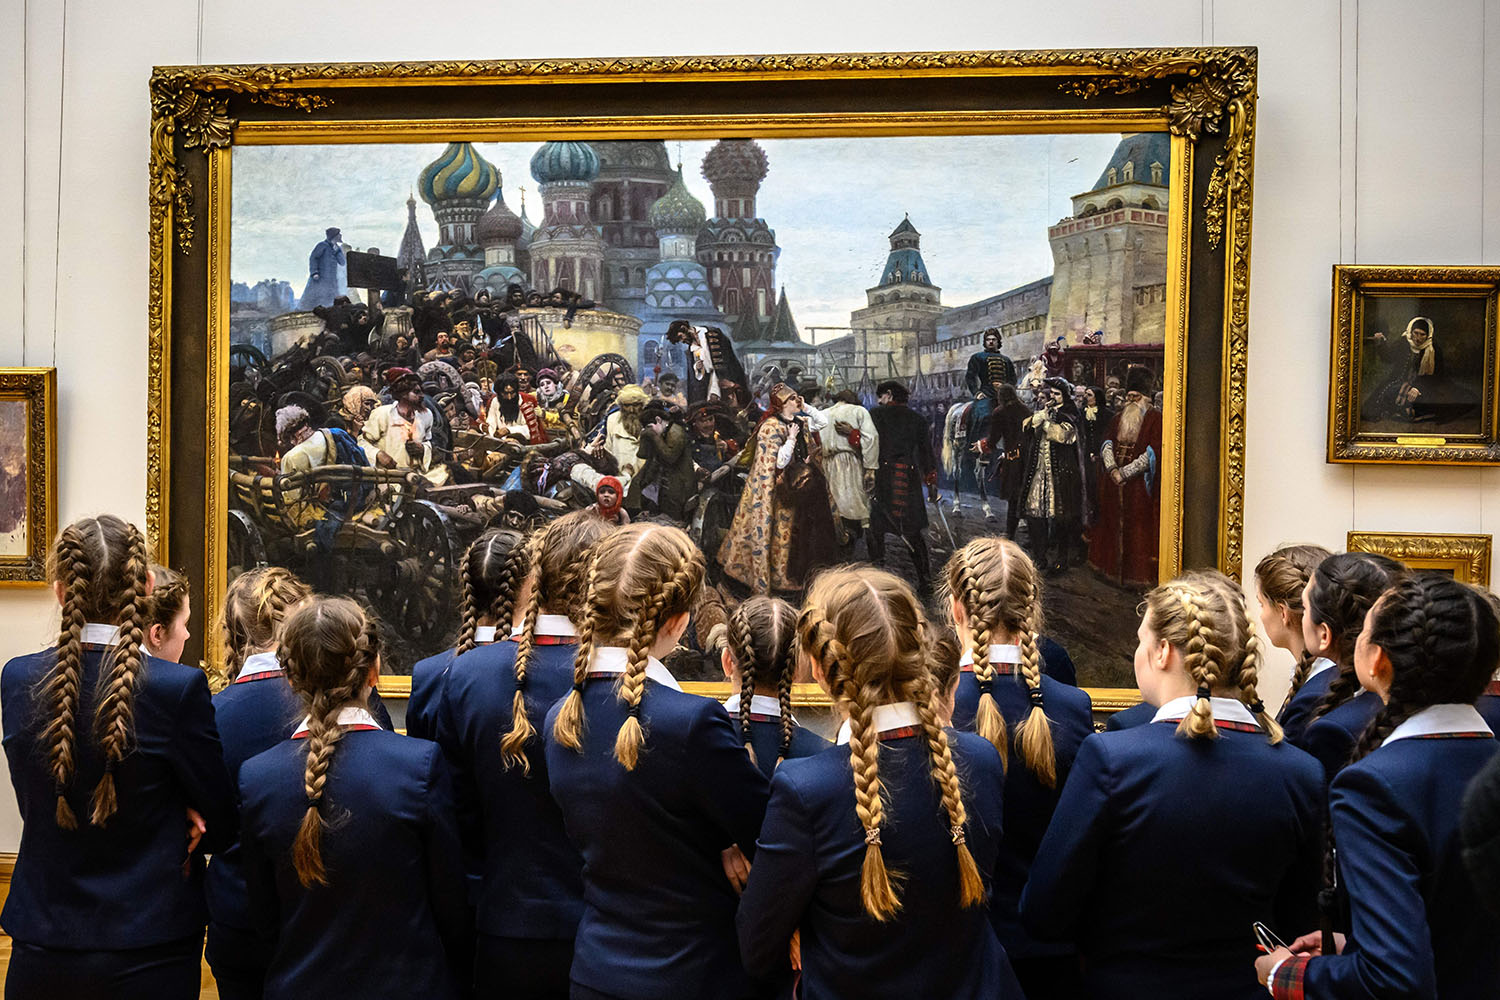 """Schoolgirls look at """"The Morning of the Streltsy Execution"""" by Russian painter Vasily Surikov at The State Tretyakov Gallery in Moscow on Feb. 26. MLADEN ANTONOV/AFP/Getty Images"""